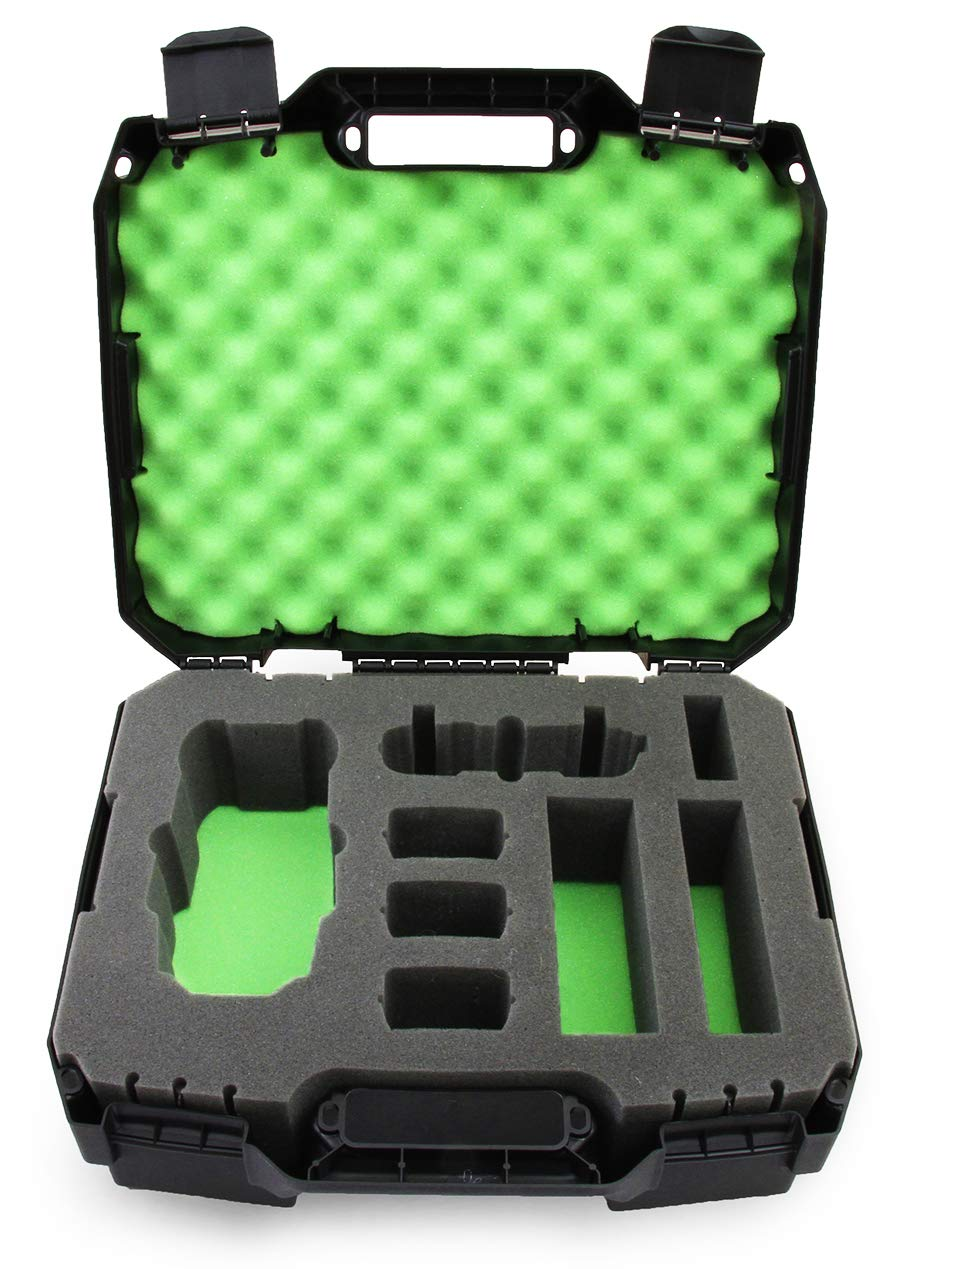 CASEMATIX Rugged Hard Case Compatible with DJI Mavic Pro 2 Drone/DJI Mavic 2 Zoom and Accessories - 2018 Green (Includes CASE ONLY)